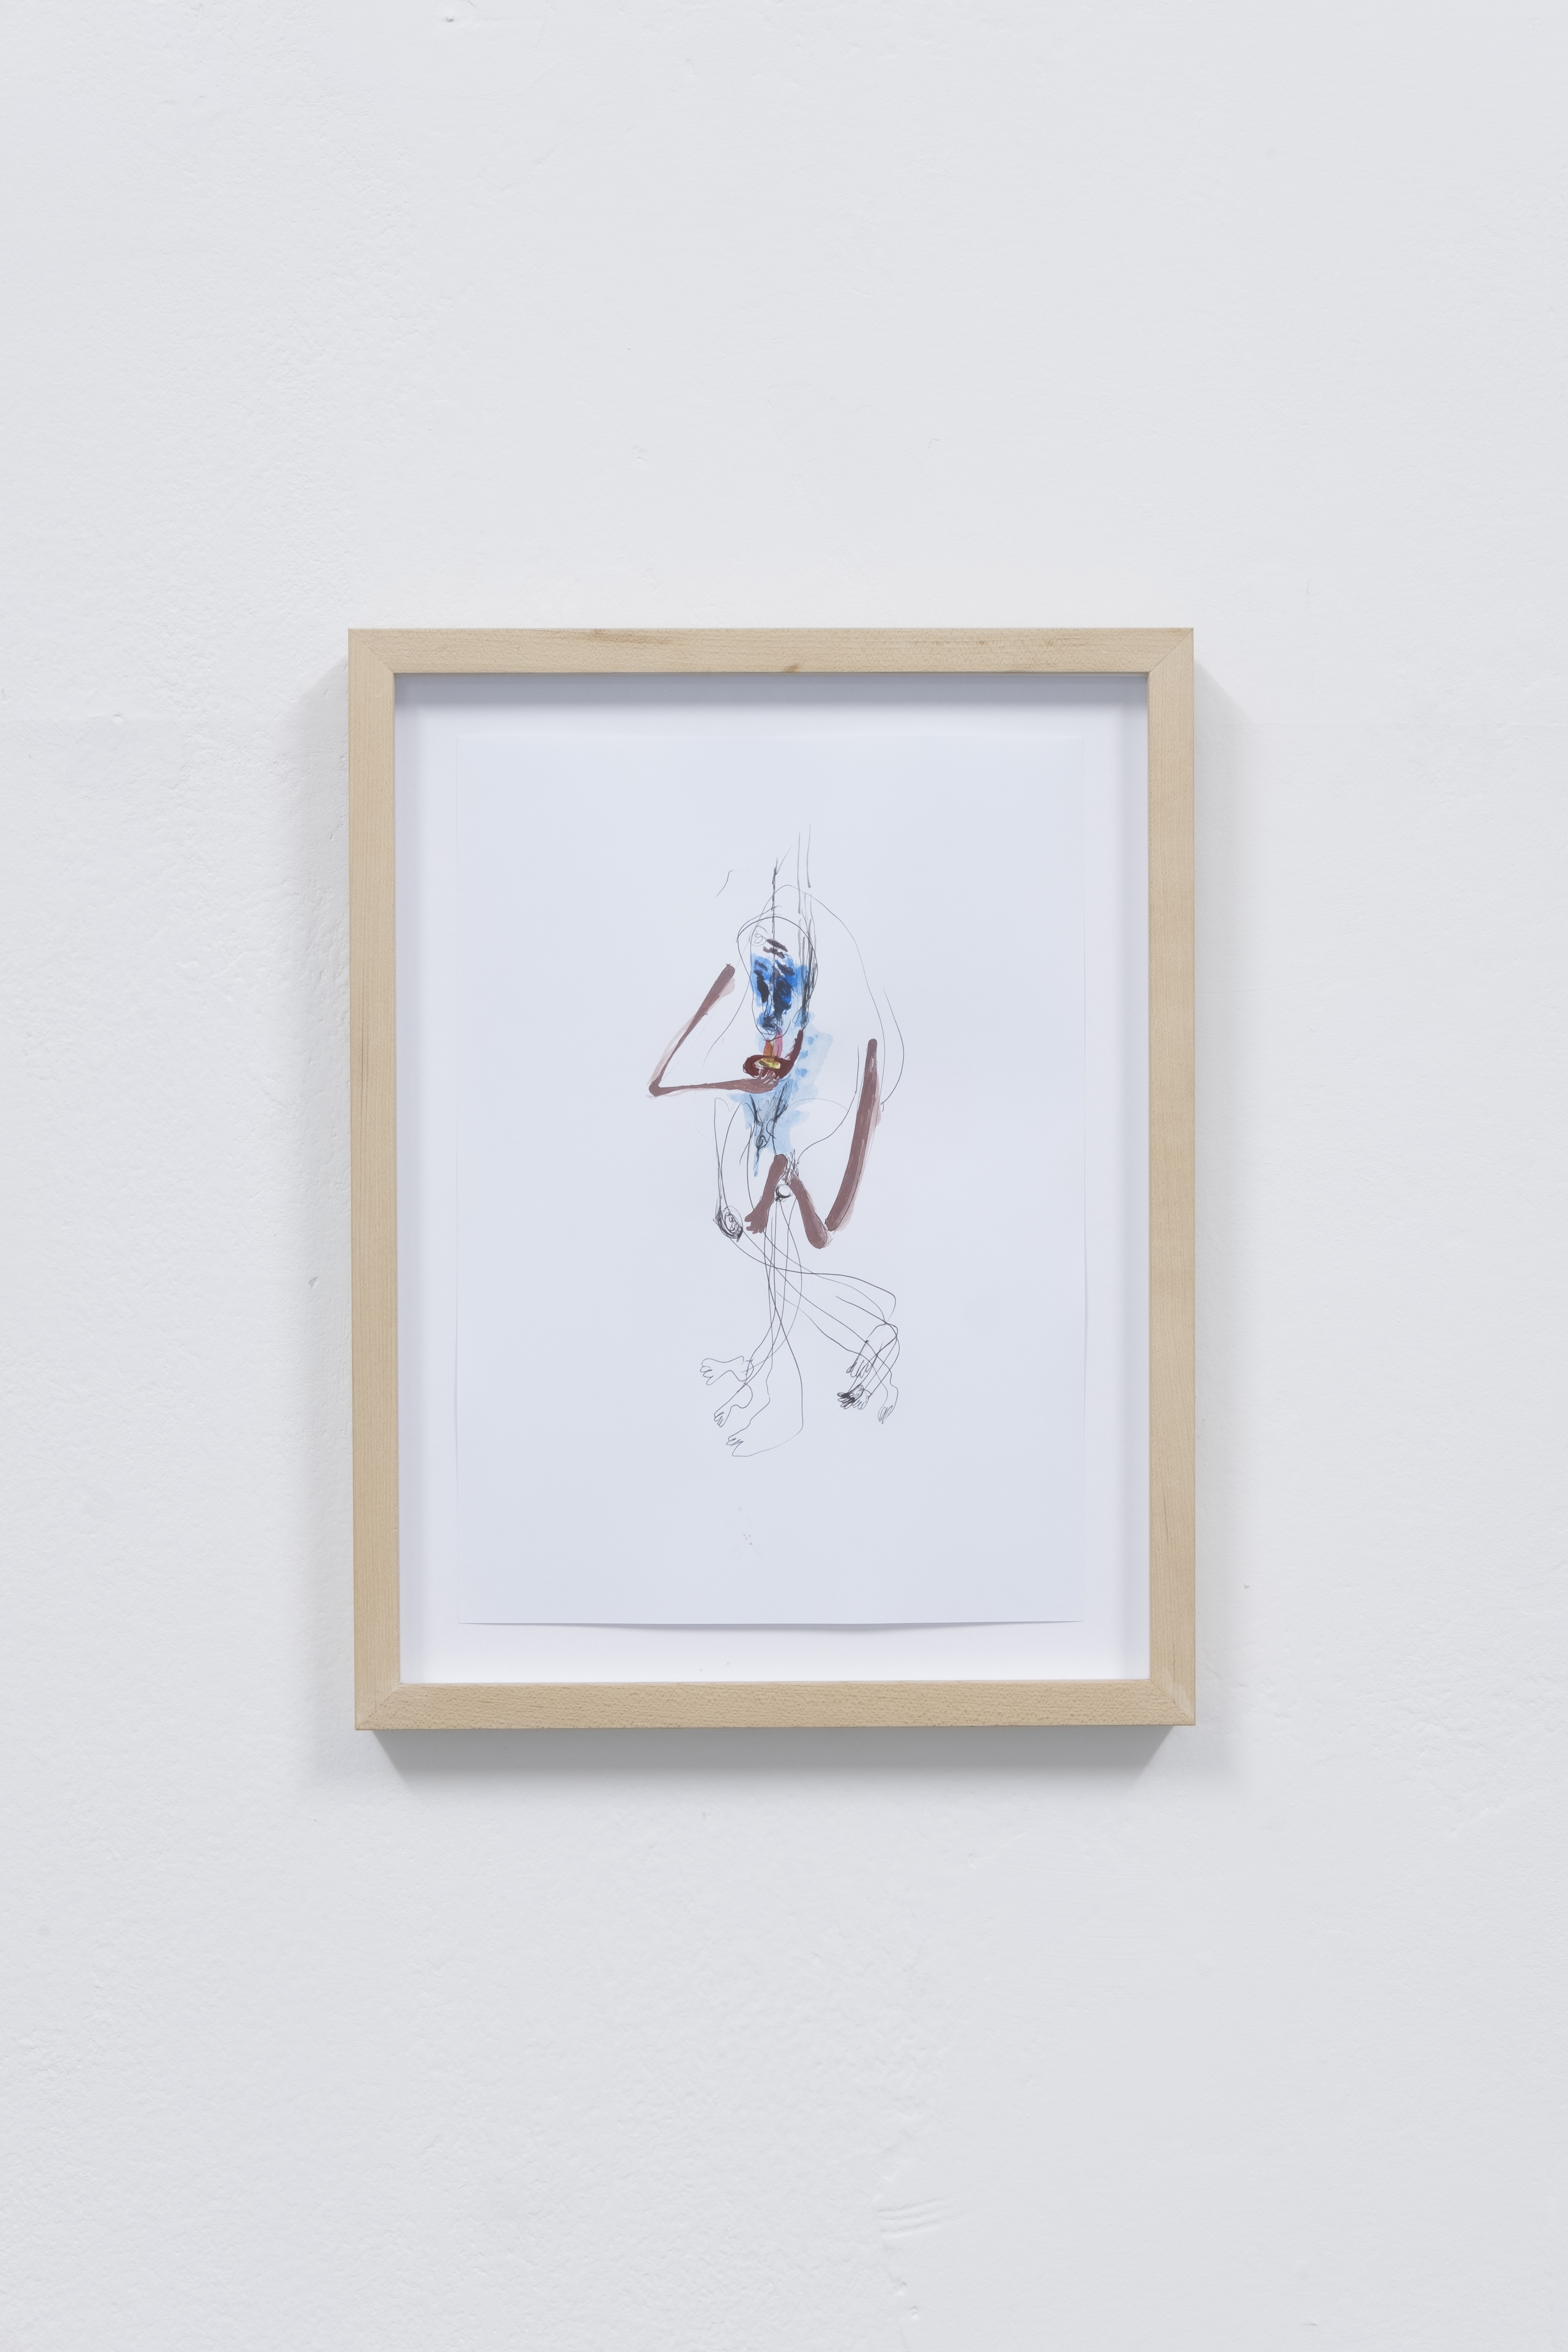 Installationsansicht Curved Arrows, Georgia Sagri, Untitled (hands and legs) Ink and colour on paper, 2019